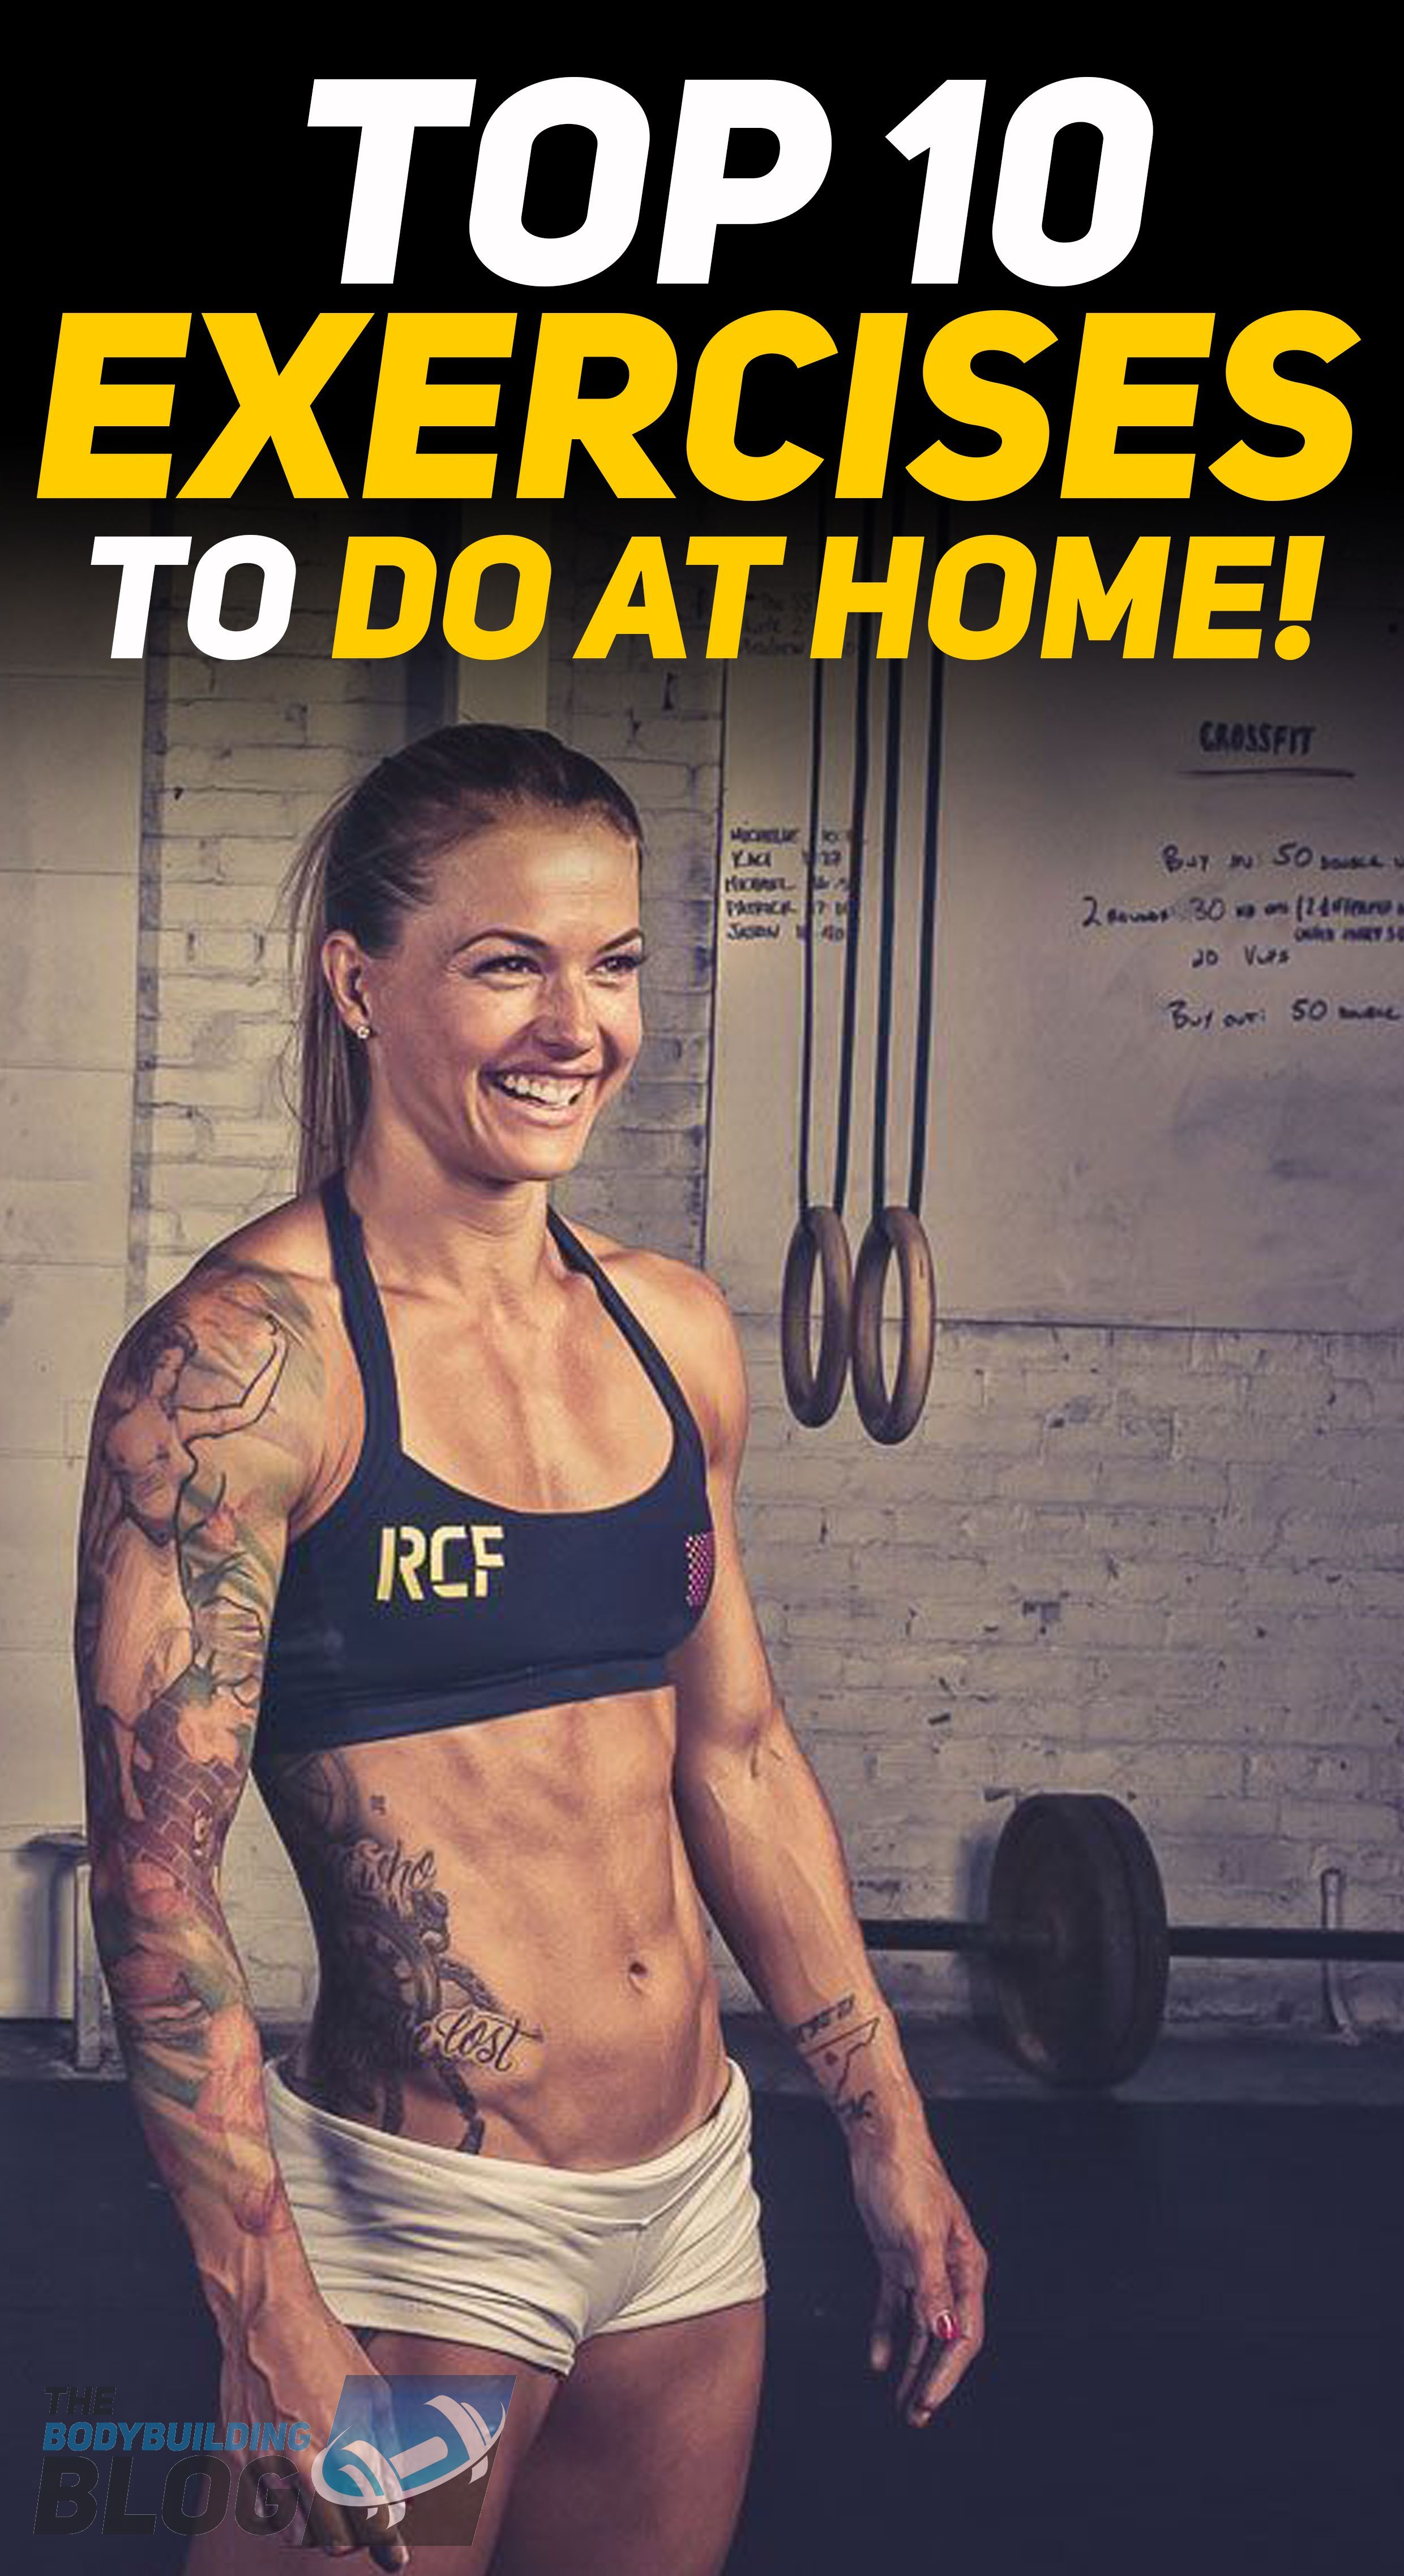 #Exercises #Home #muscle fitness #Top Check out the top 10 exercises to do at home! #fitness #gym #e...